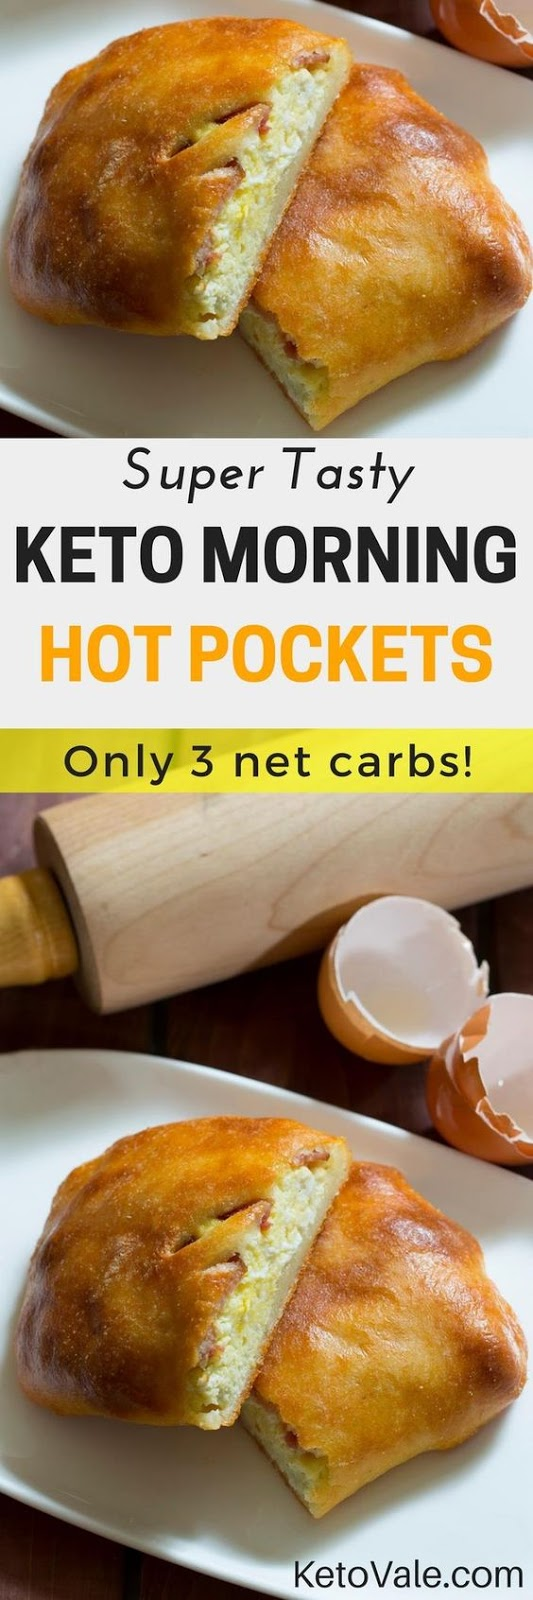 Super Tasty Keto Morning Hot Pockets (Keto - Low Carb)